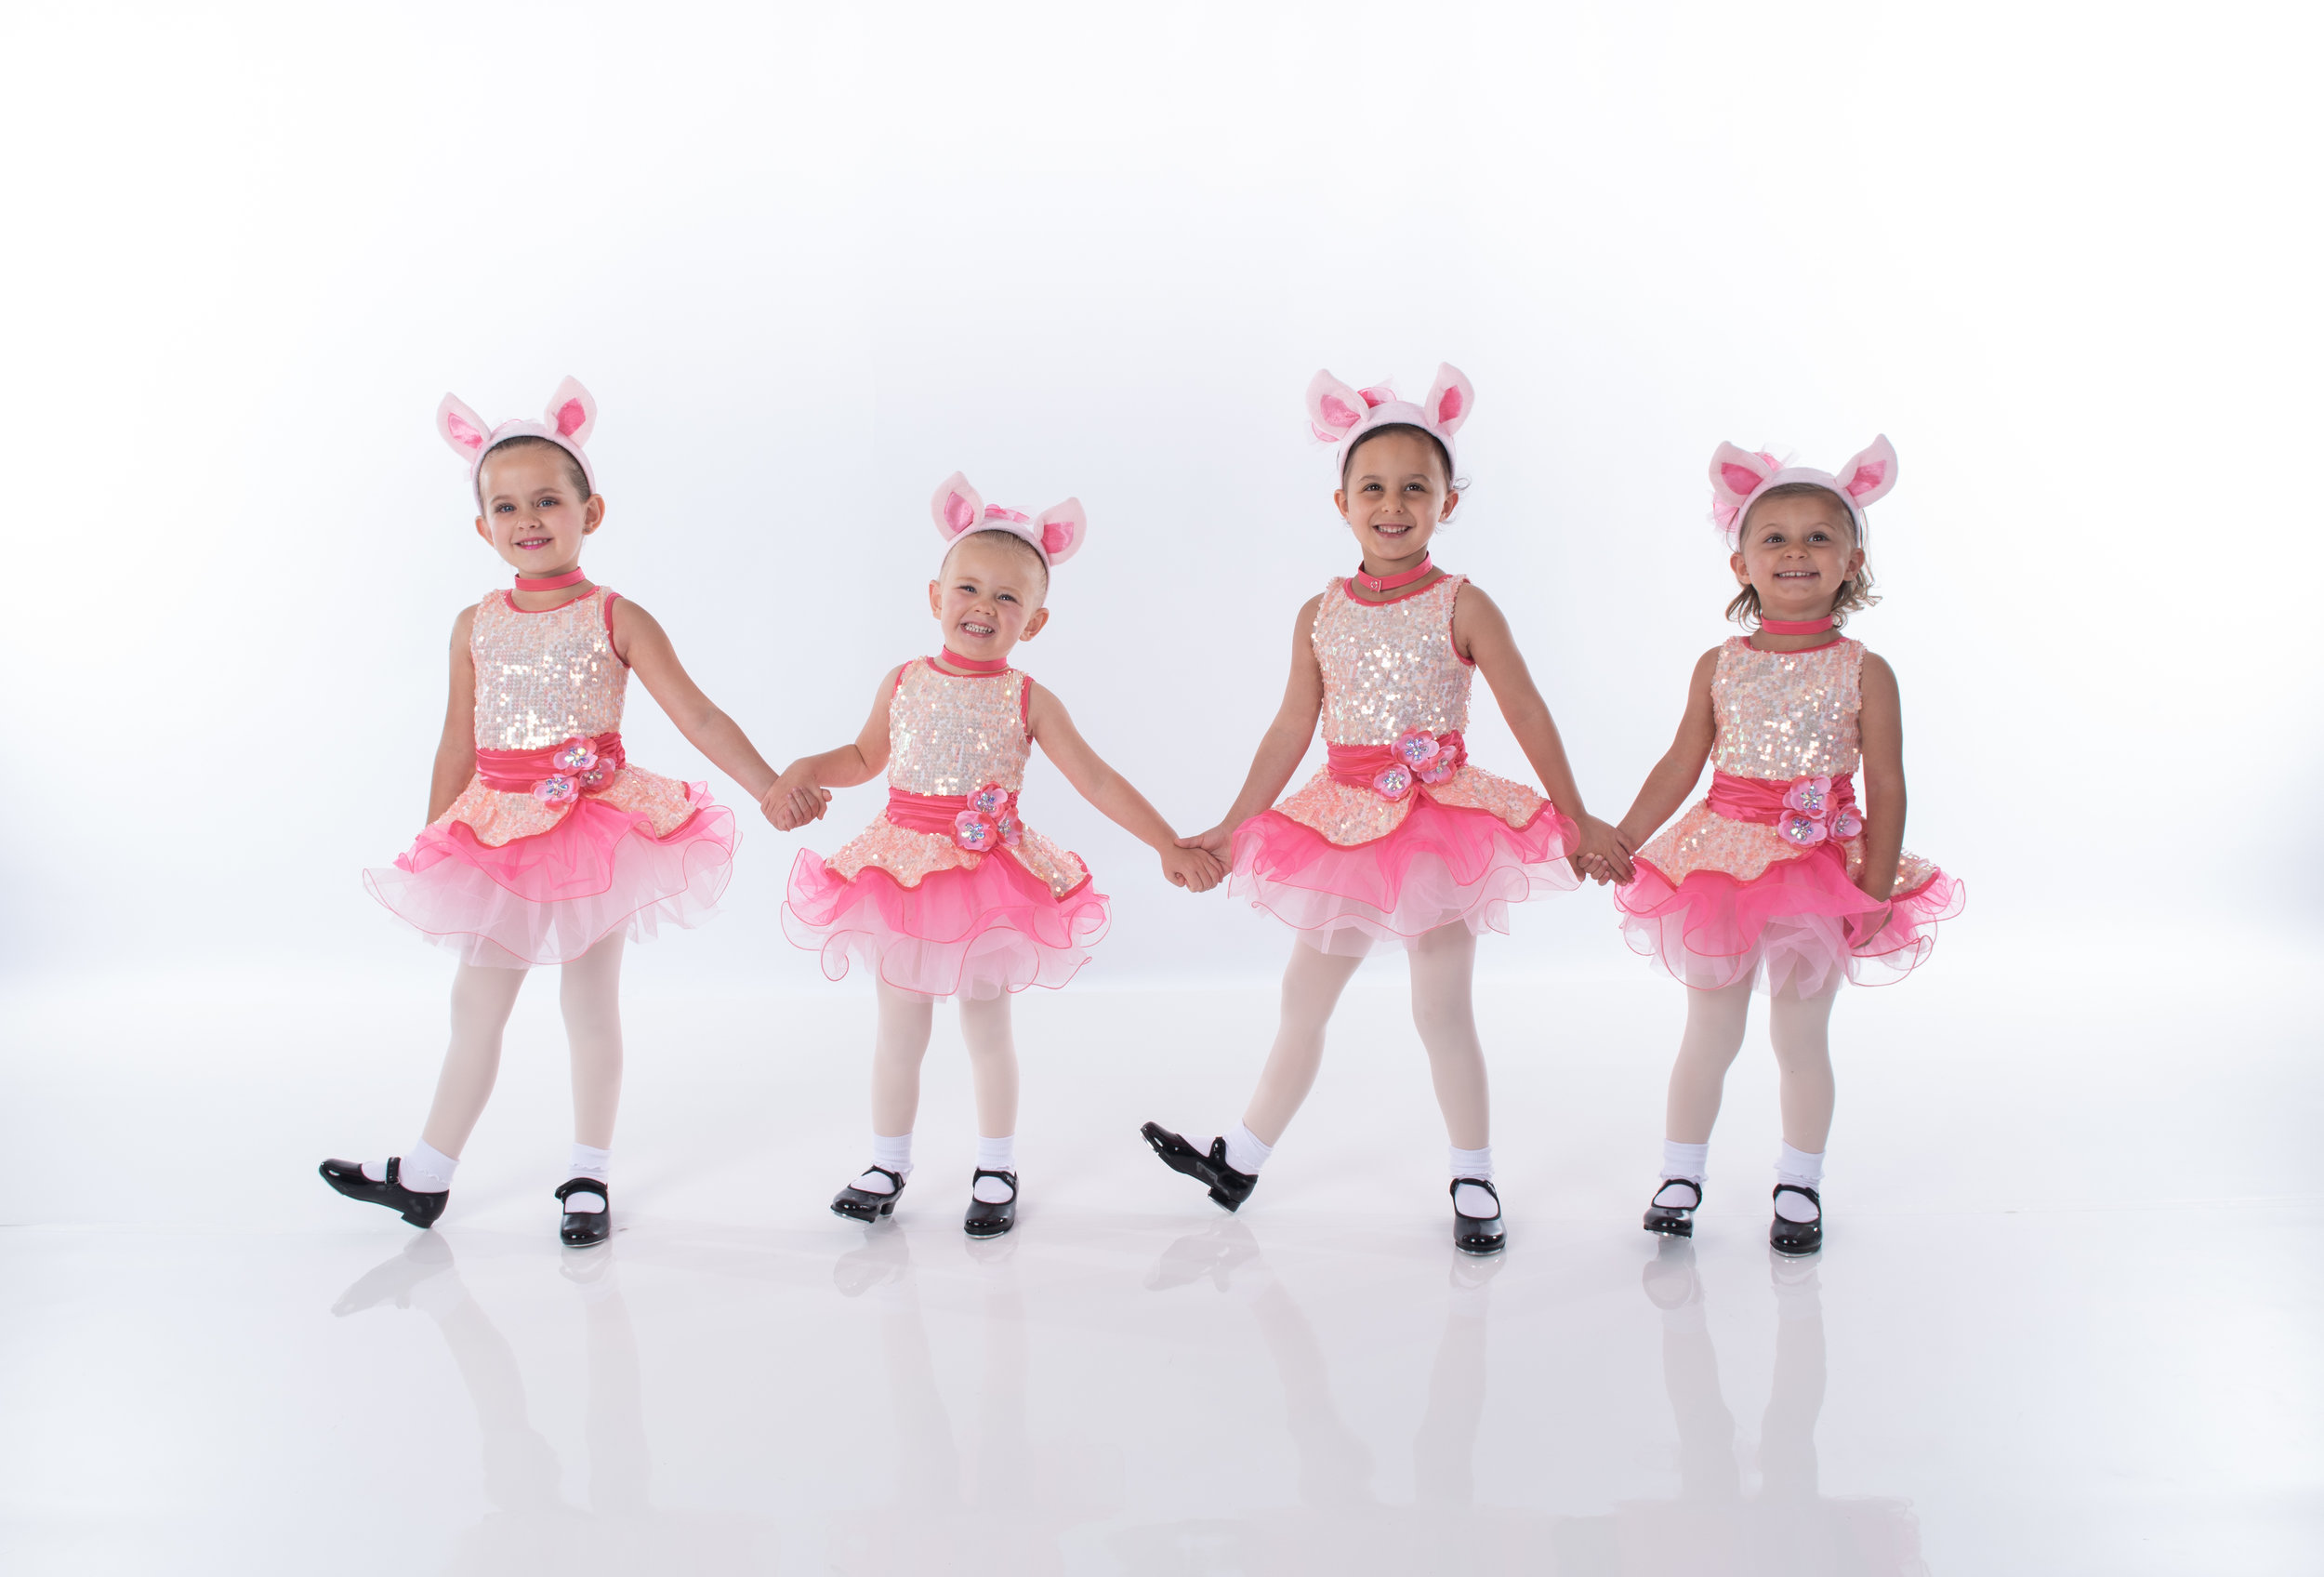 TAP - Tap classes are designed to develop rhythm, style and sound. Students will learn a variety of tap styles from Broadway to Rhythm tap. The class emphasis is on developing proper tap technique, producing clear tap sounds, and having fun.